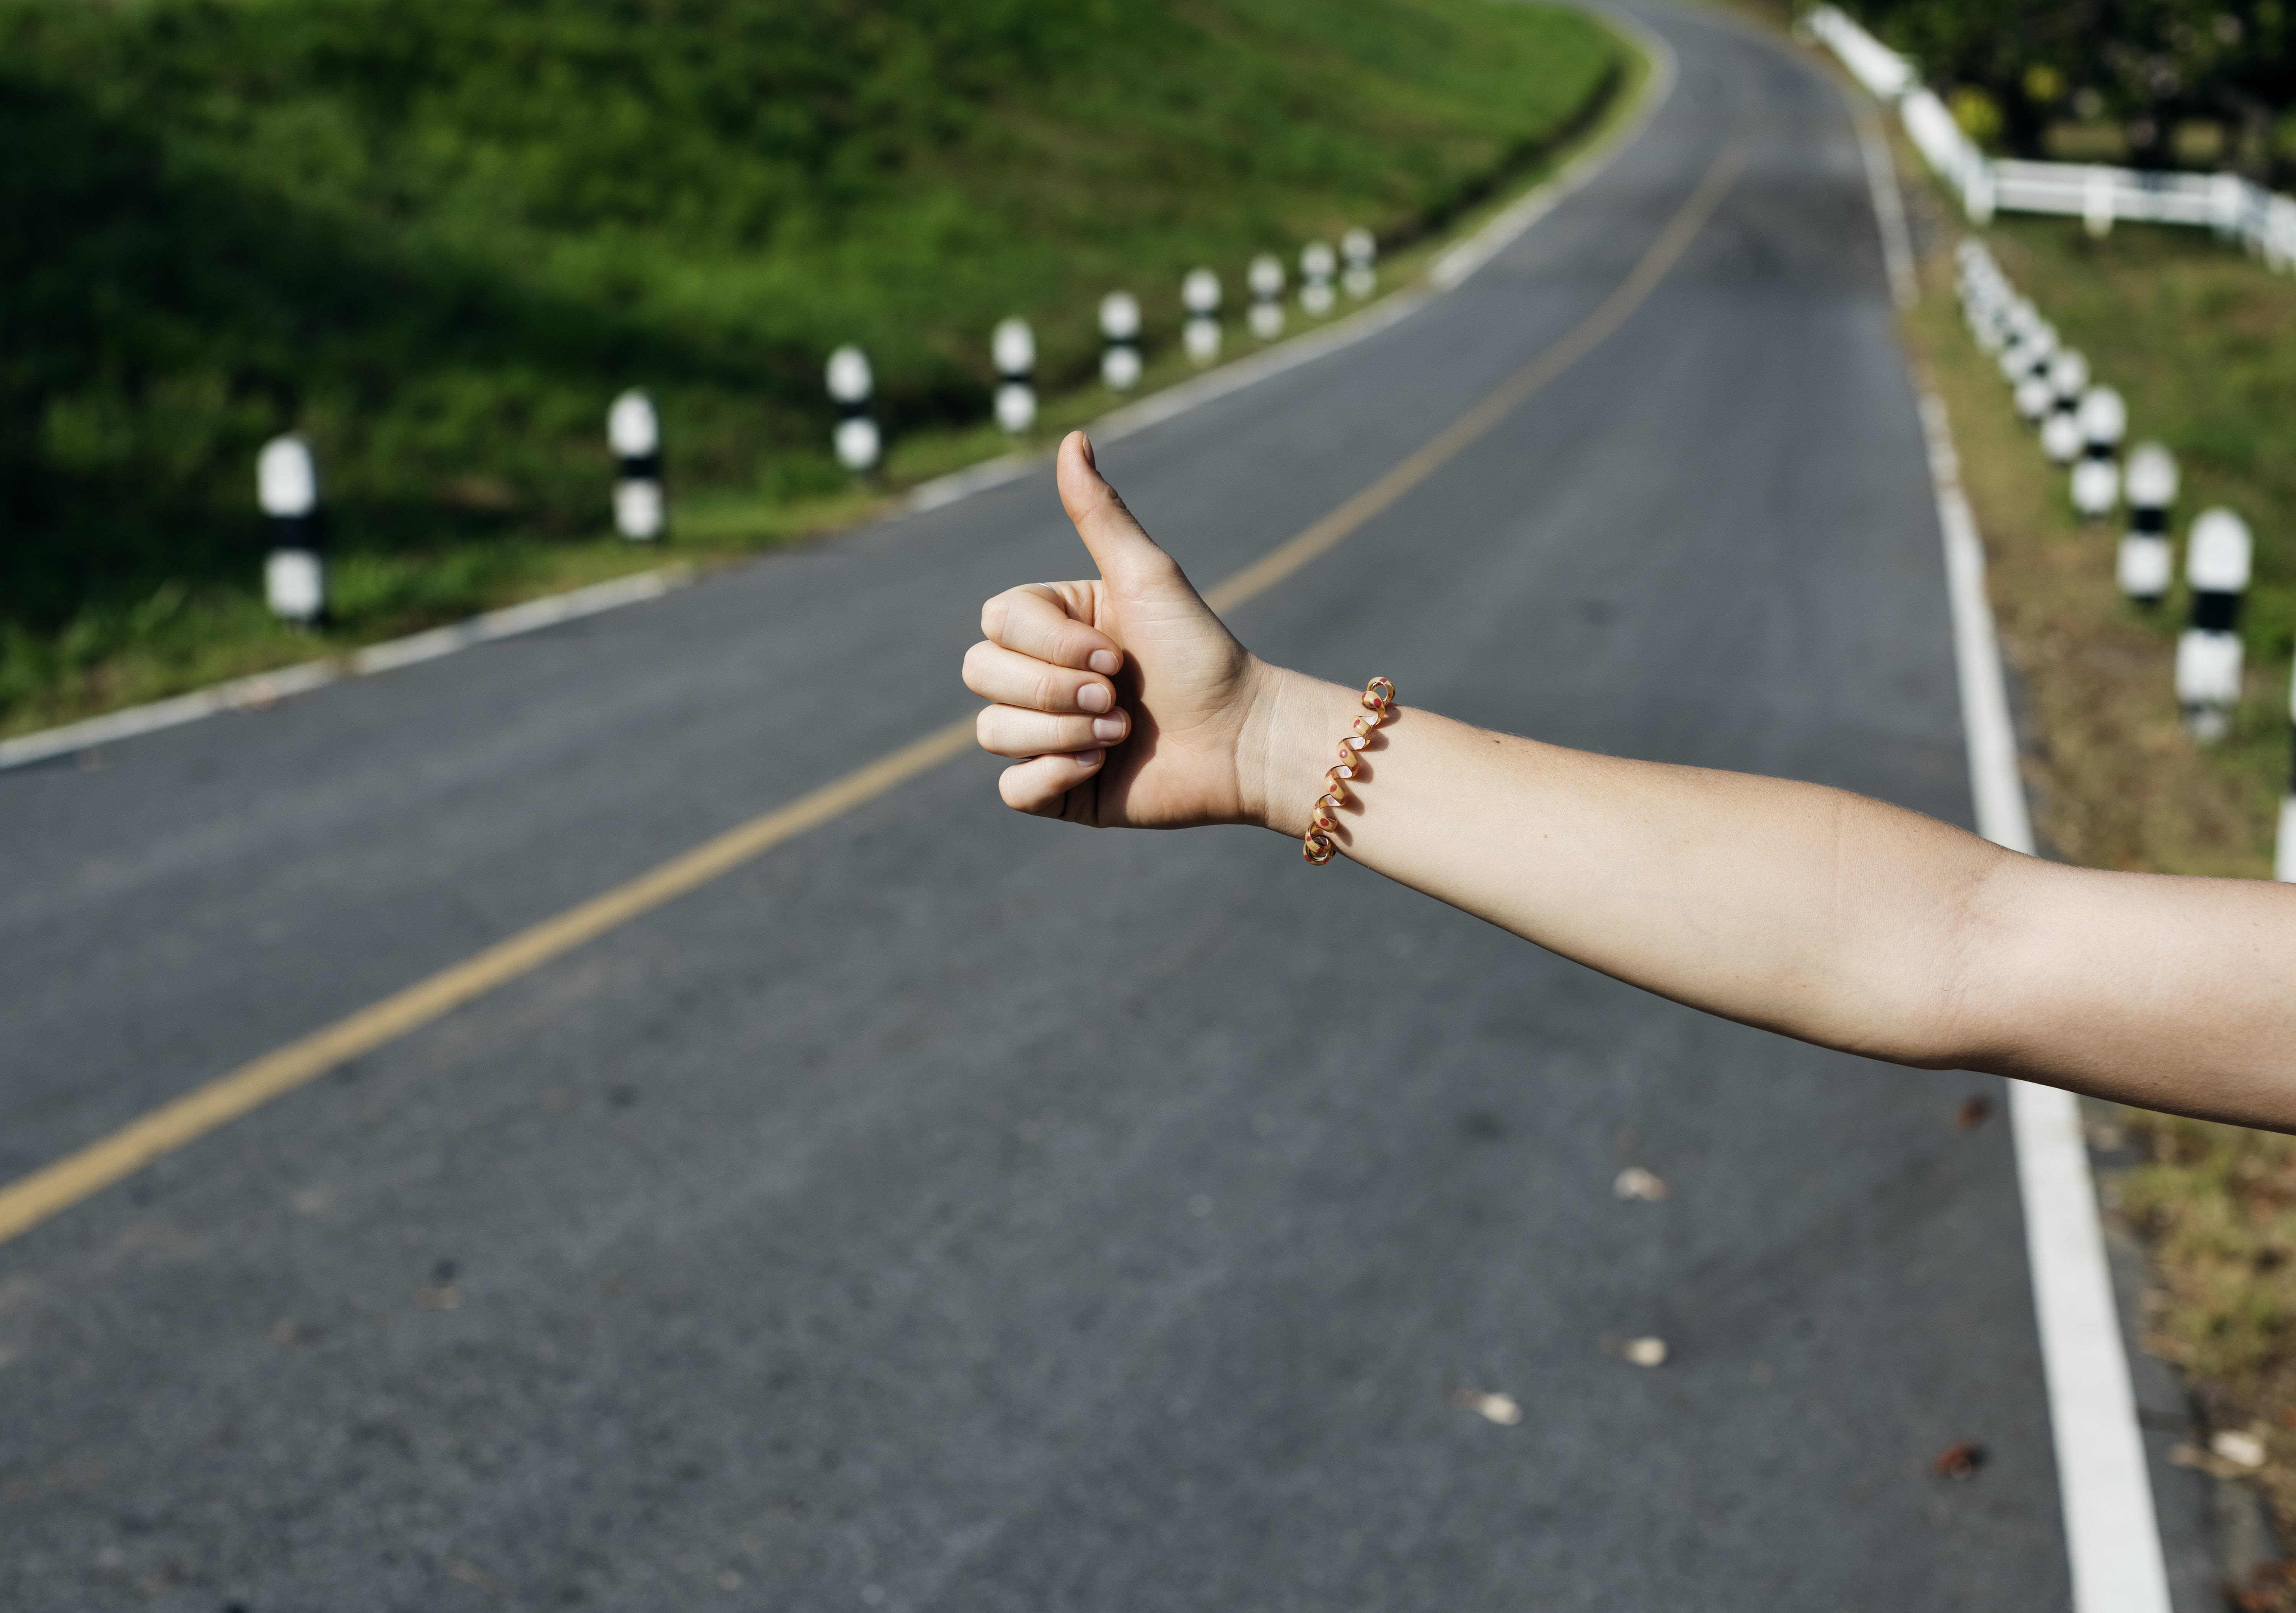 person's thumbs up gesture on road